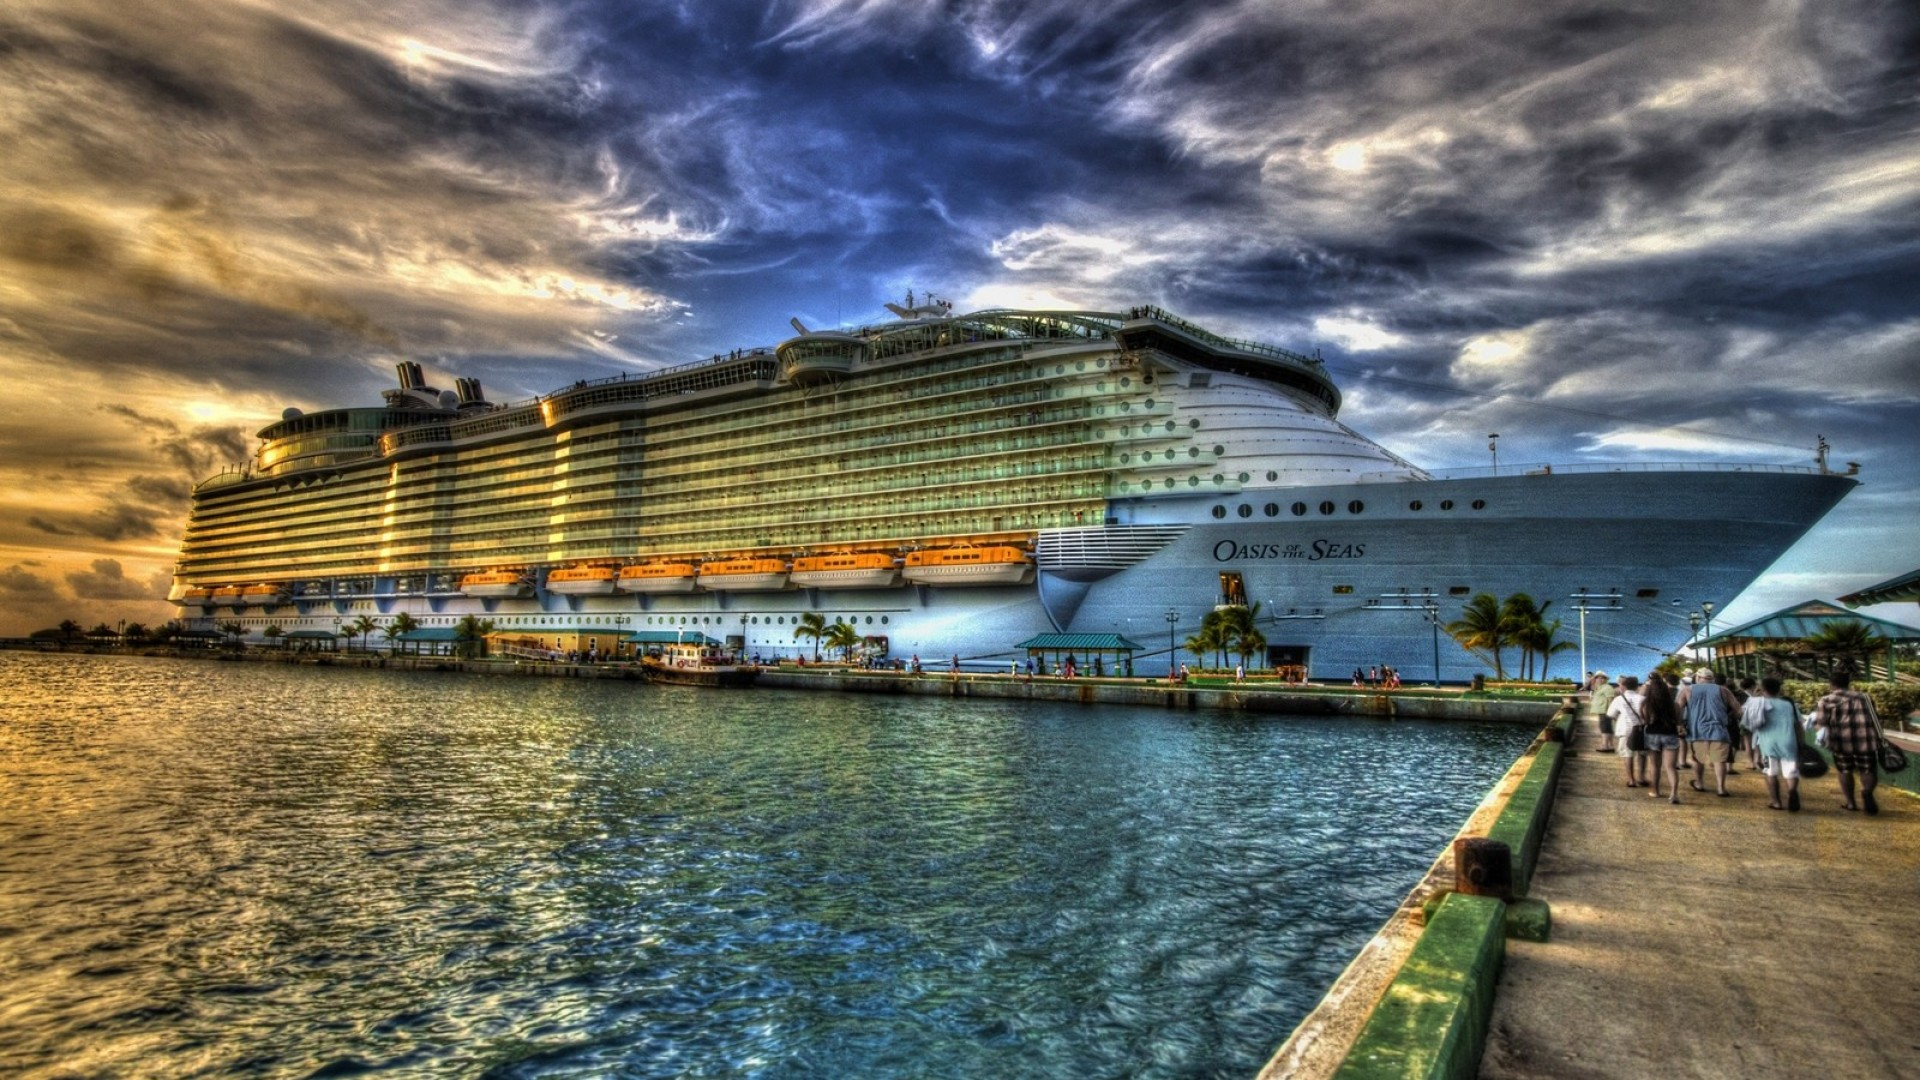 September 18 2015 By admin Comments Off on Cruise Ship Wallpapers HD 1920x1080